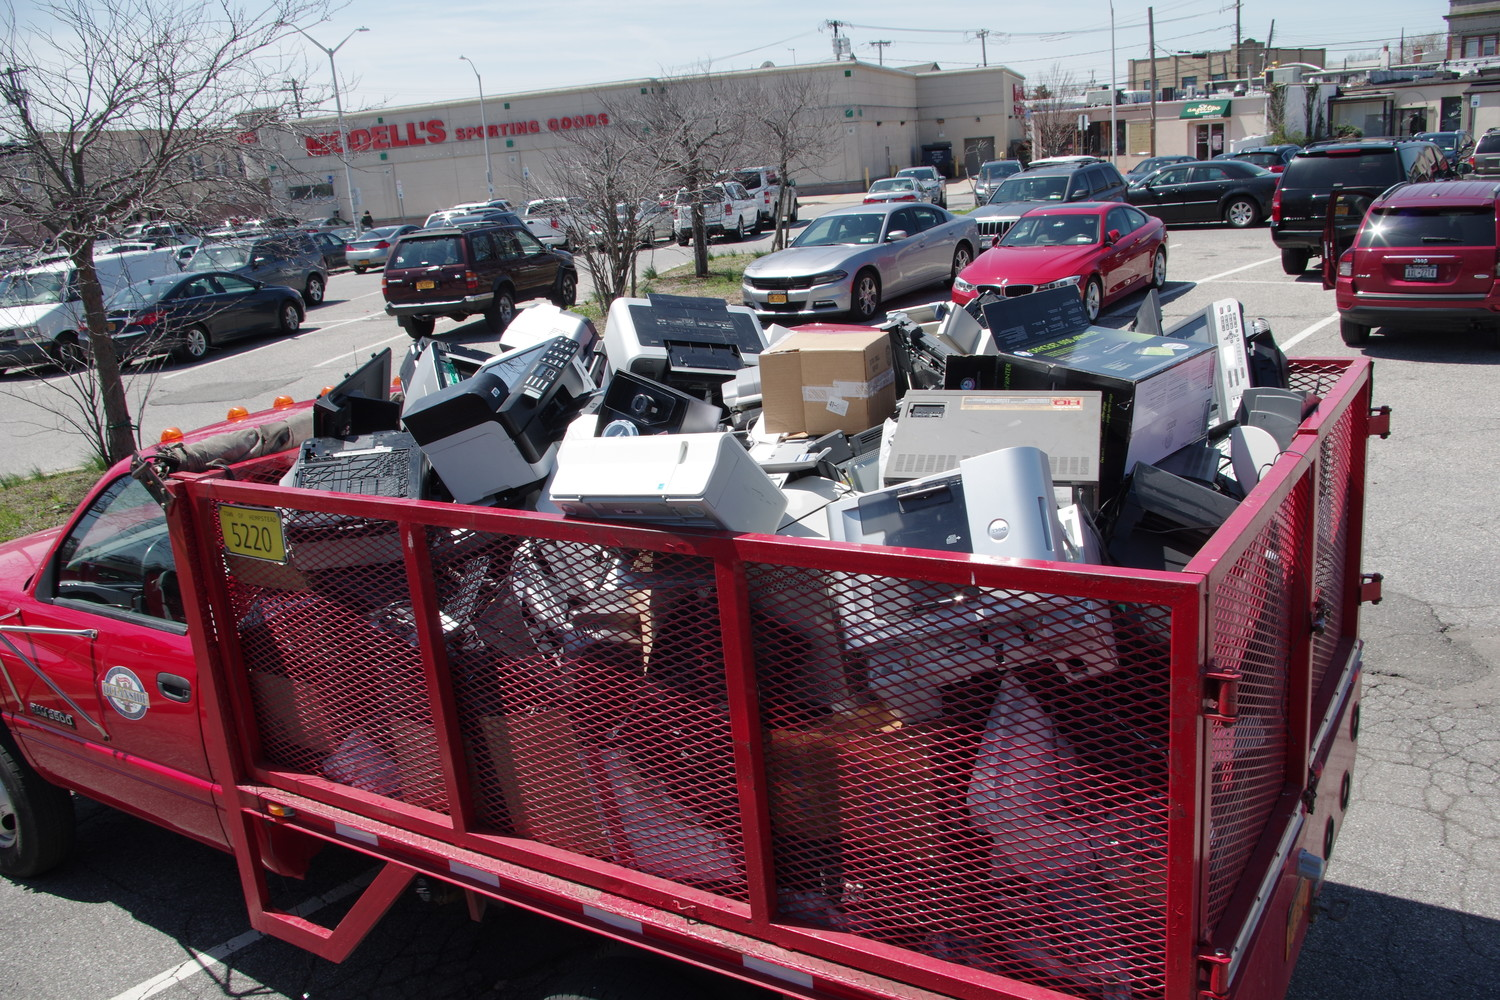 Sanitation Supervisor Dan Faust said residents brought three pickup trucks worth of electronic waste to be recycled.